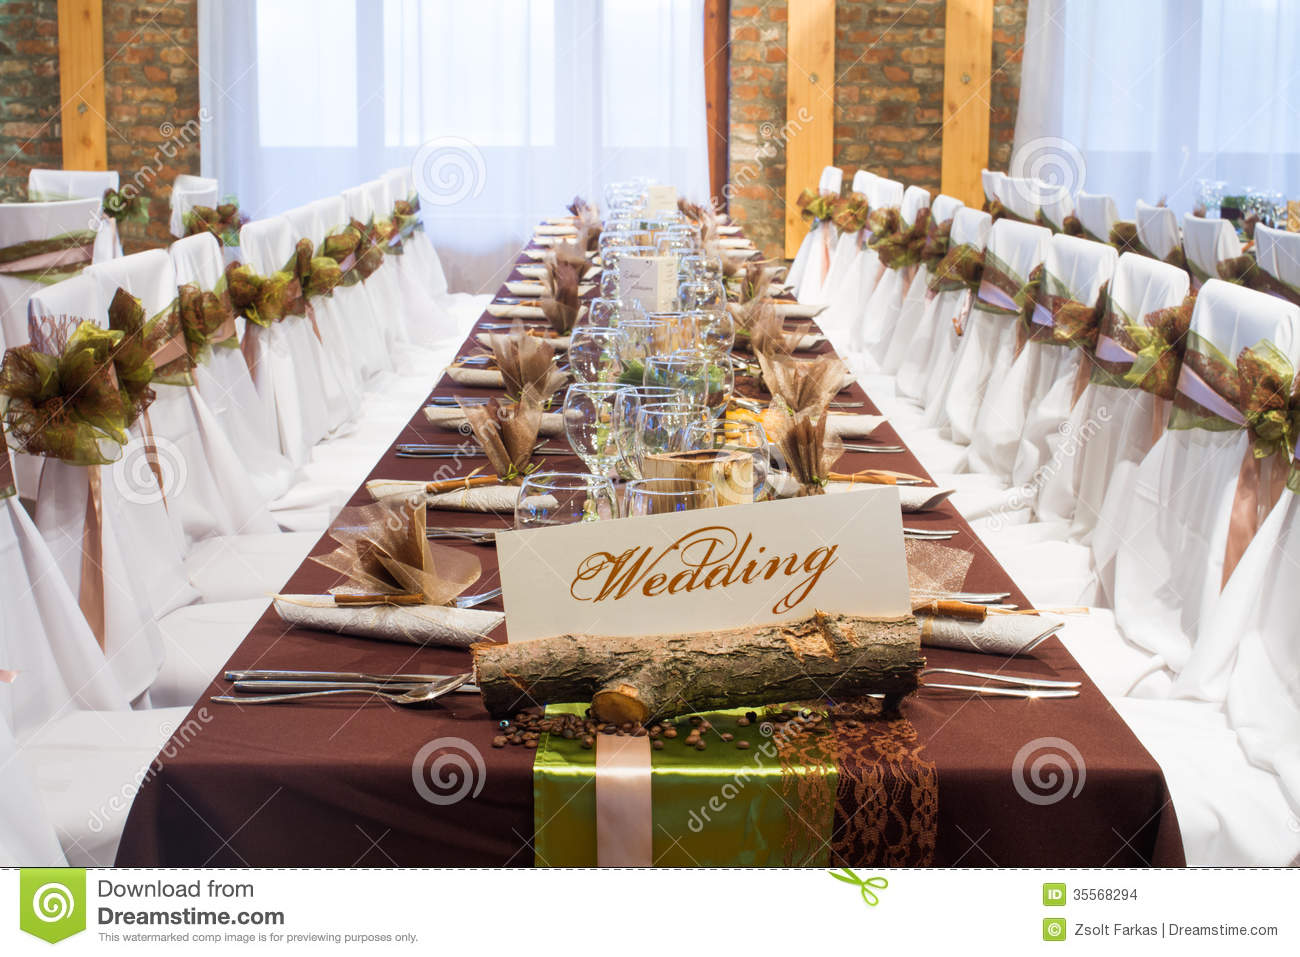 Special Wedding Table Decorations Stock Photo Image Of Brown